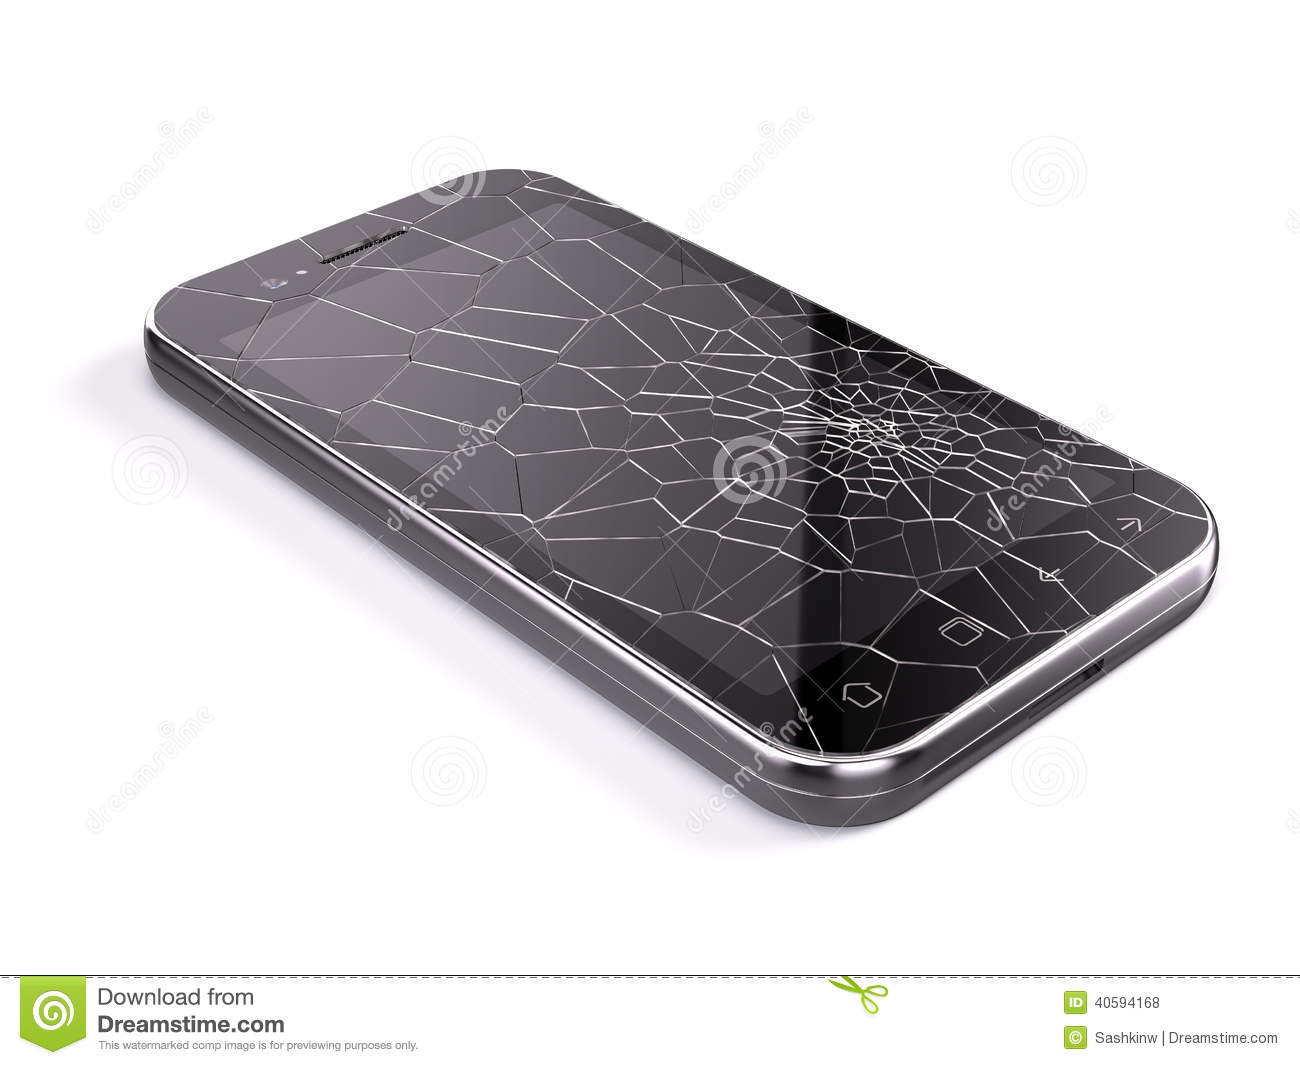 how to fix cracked glass on cell phone